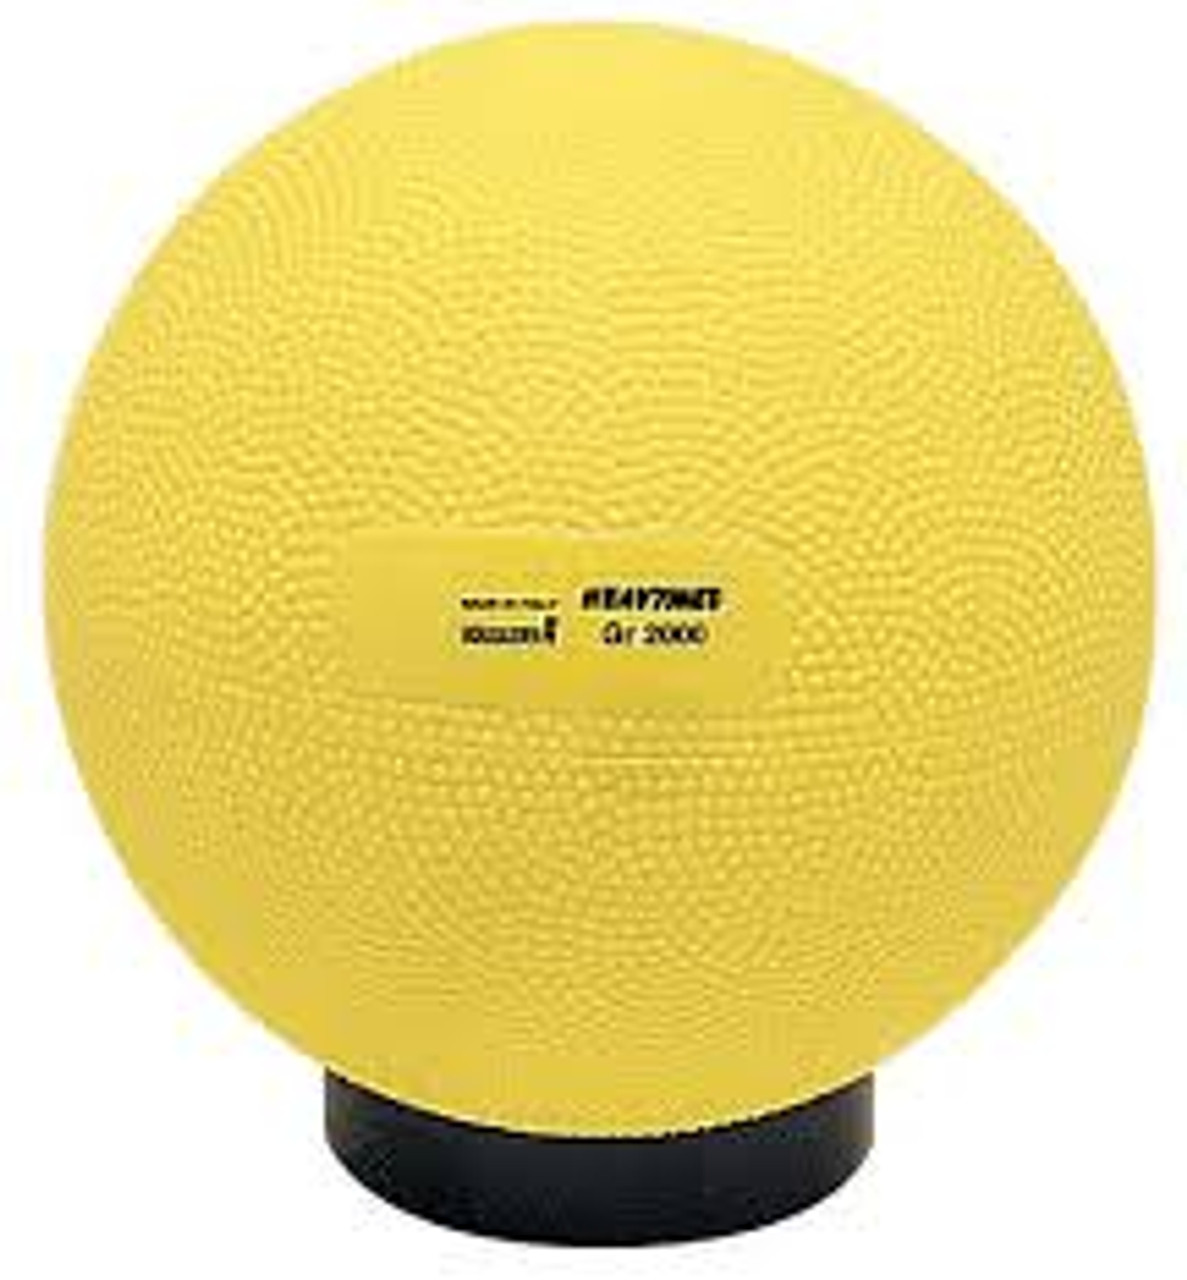 Heavymed Yellow 4 to 5 lb Weighted Ball